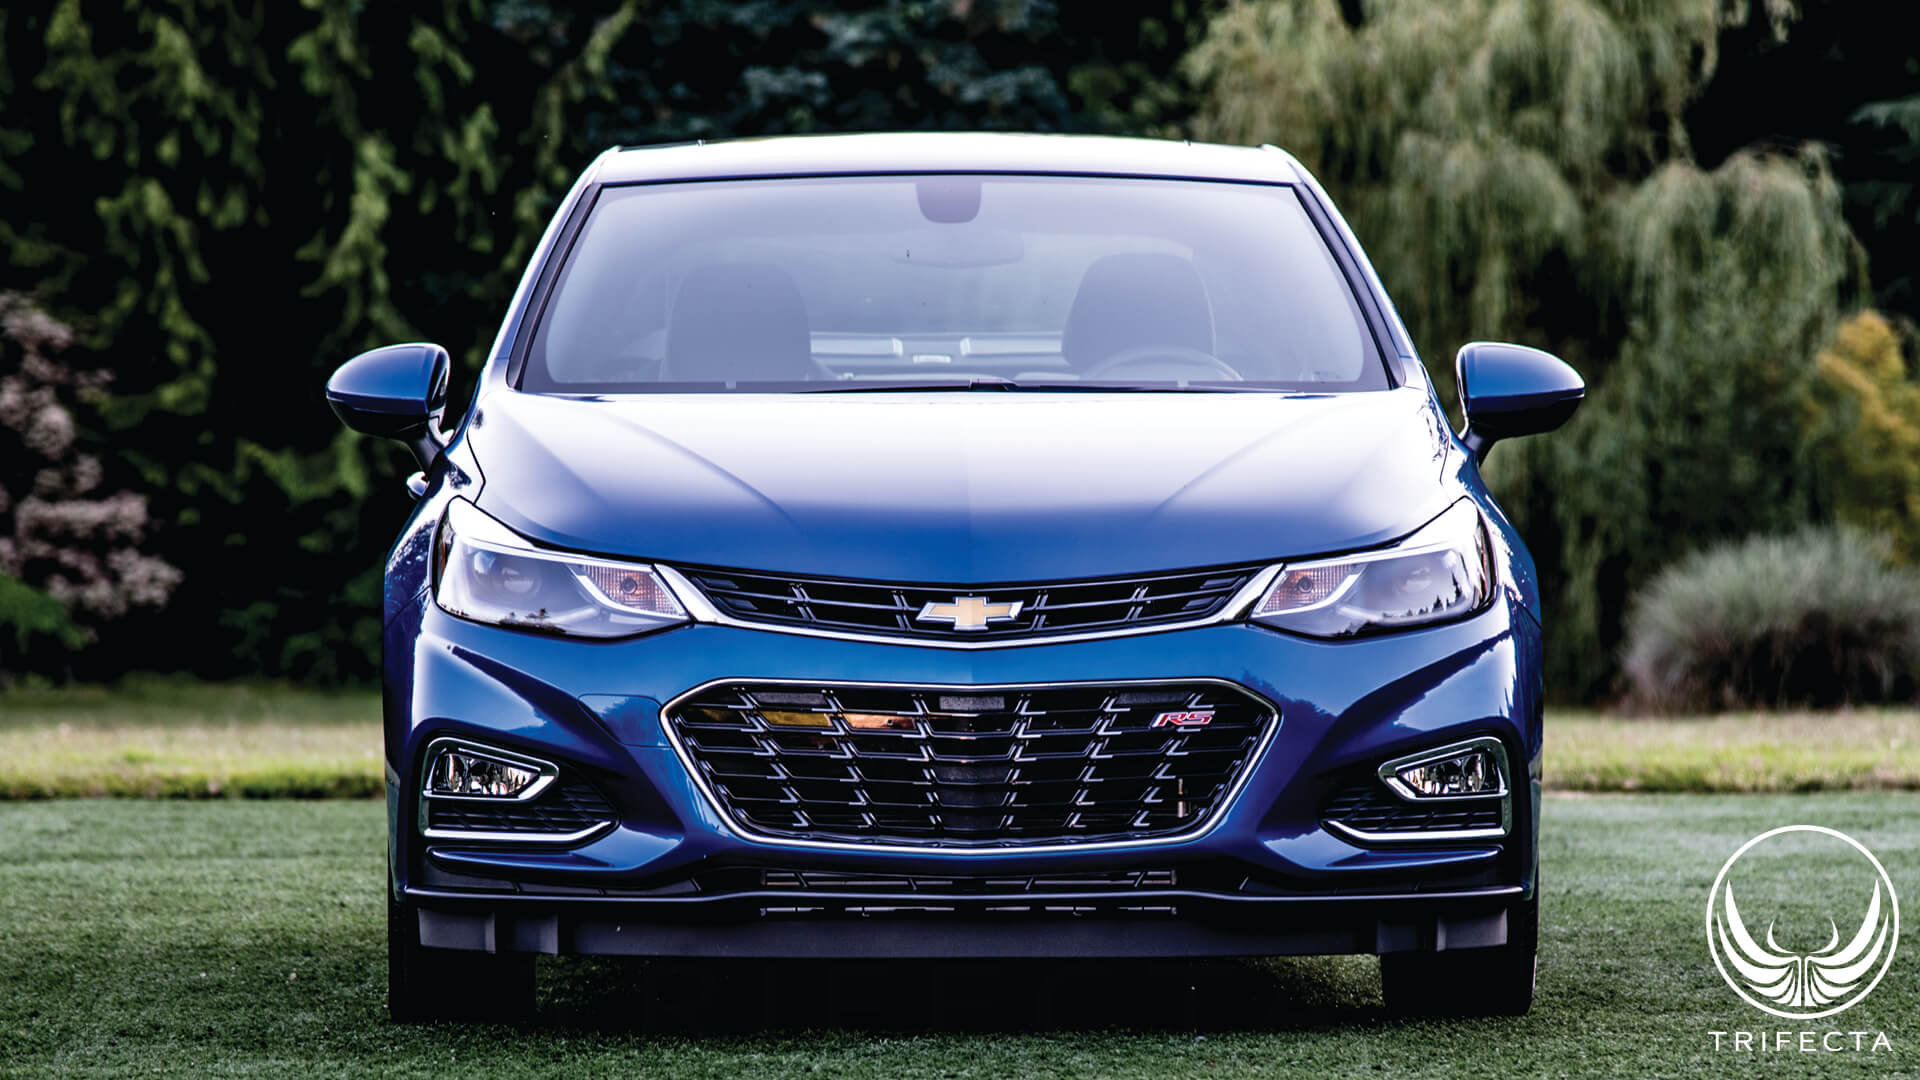 Product Review: 2016--2018+ Chevrolet Cruze / Cruze Hatch - 1.4L Turbo Elite